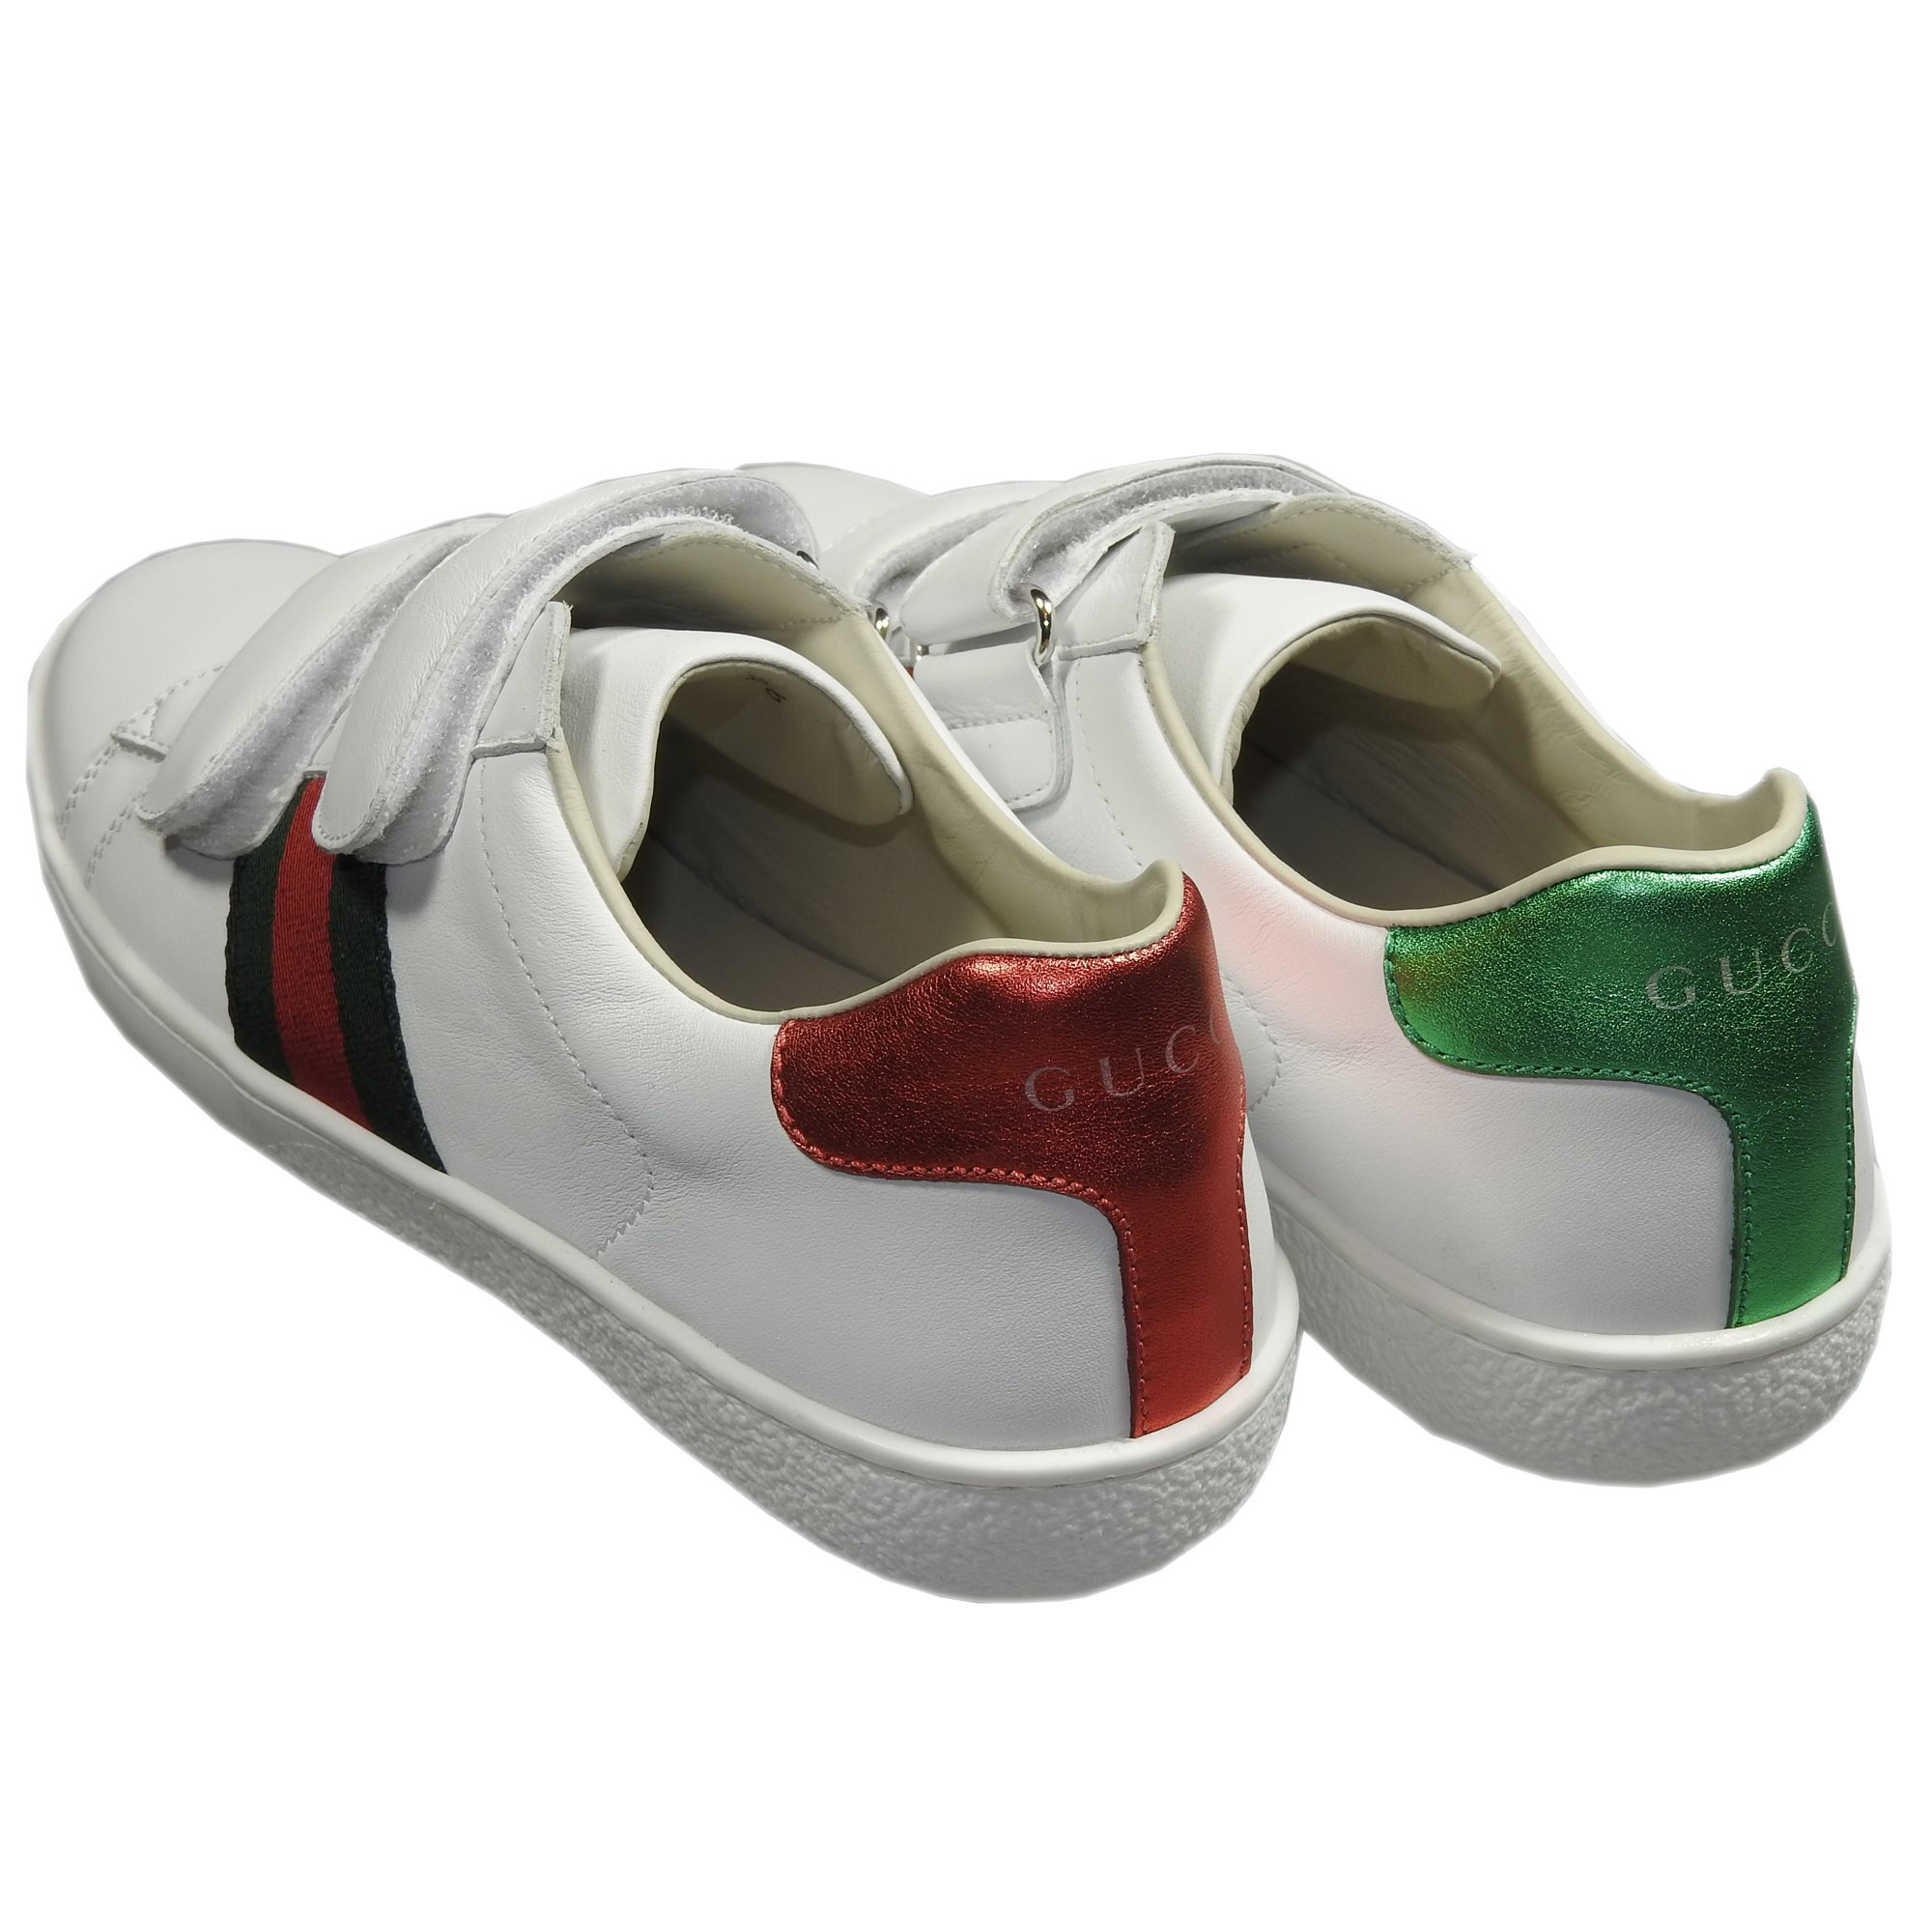 Guicci Baby Shoes